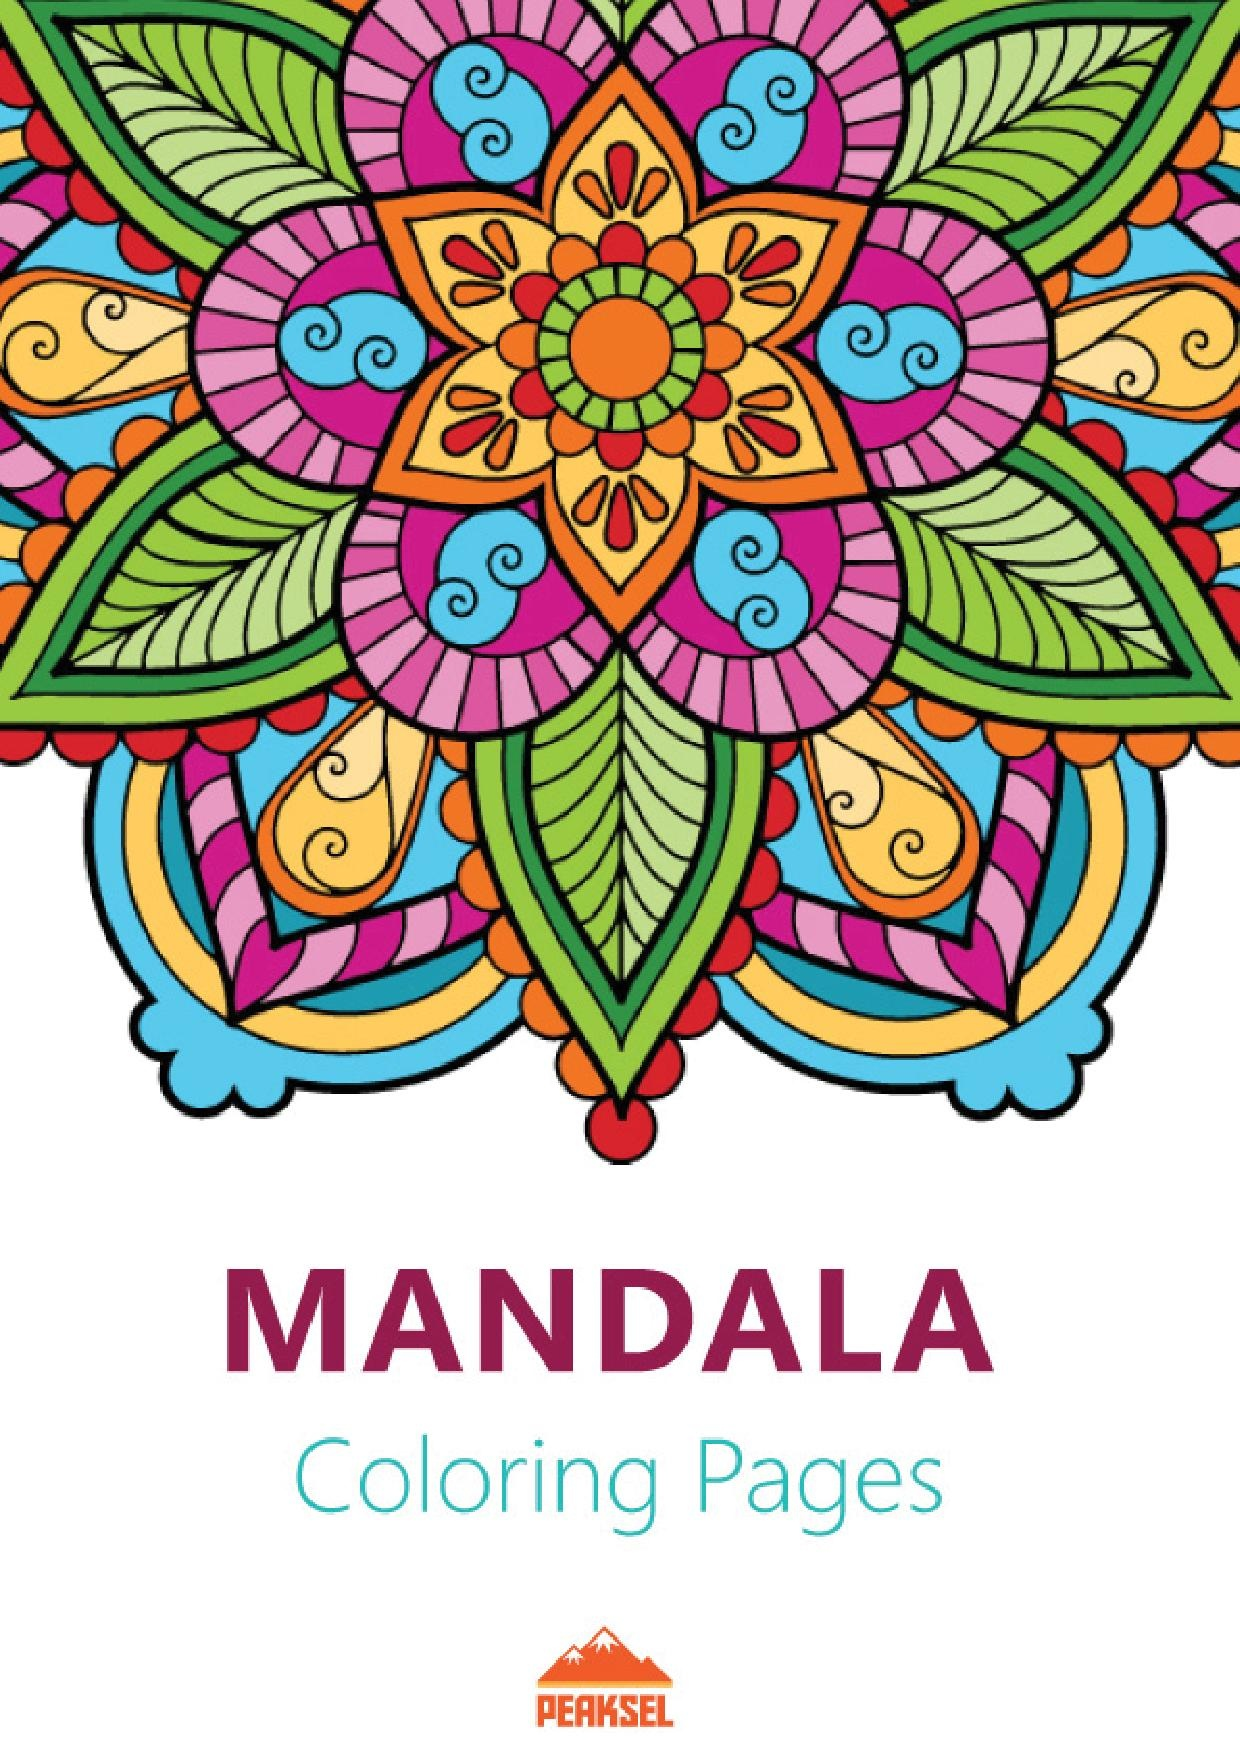 File Mandala Coloring Pages for